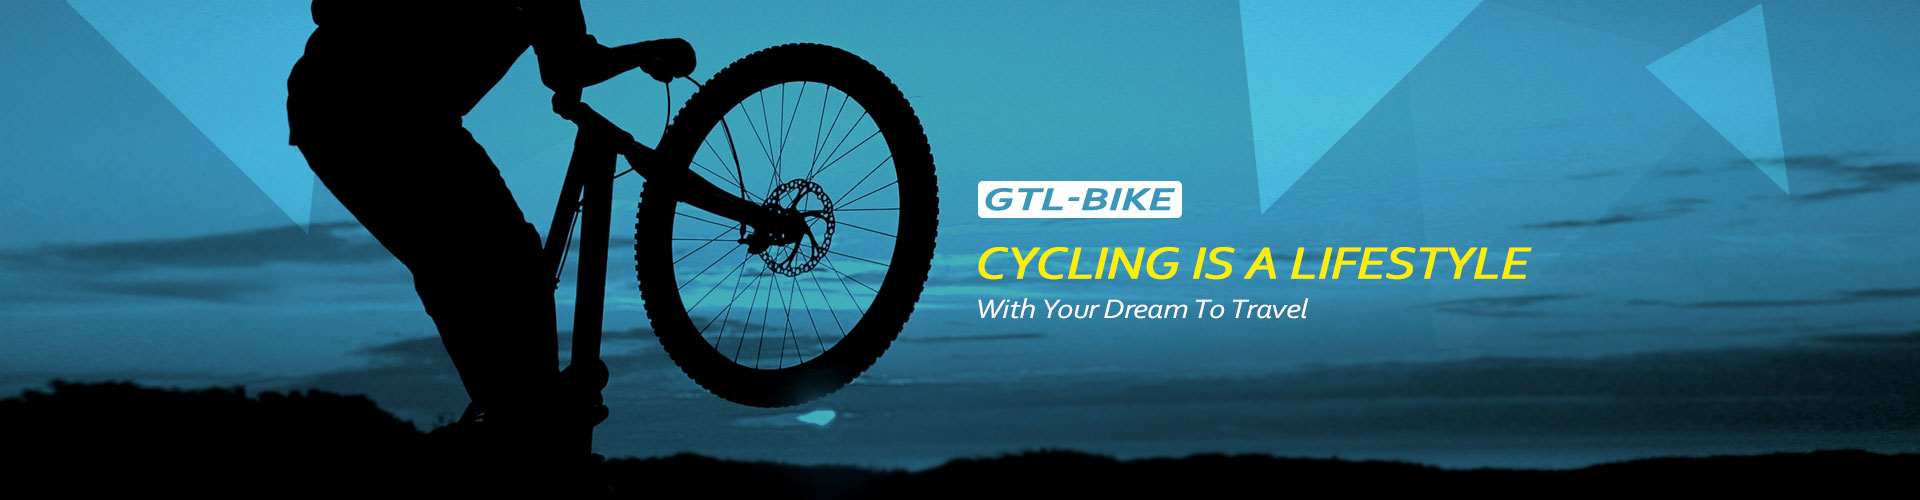 Products By GTL-BIKE